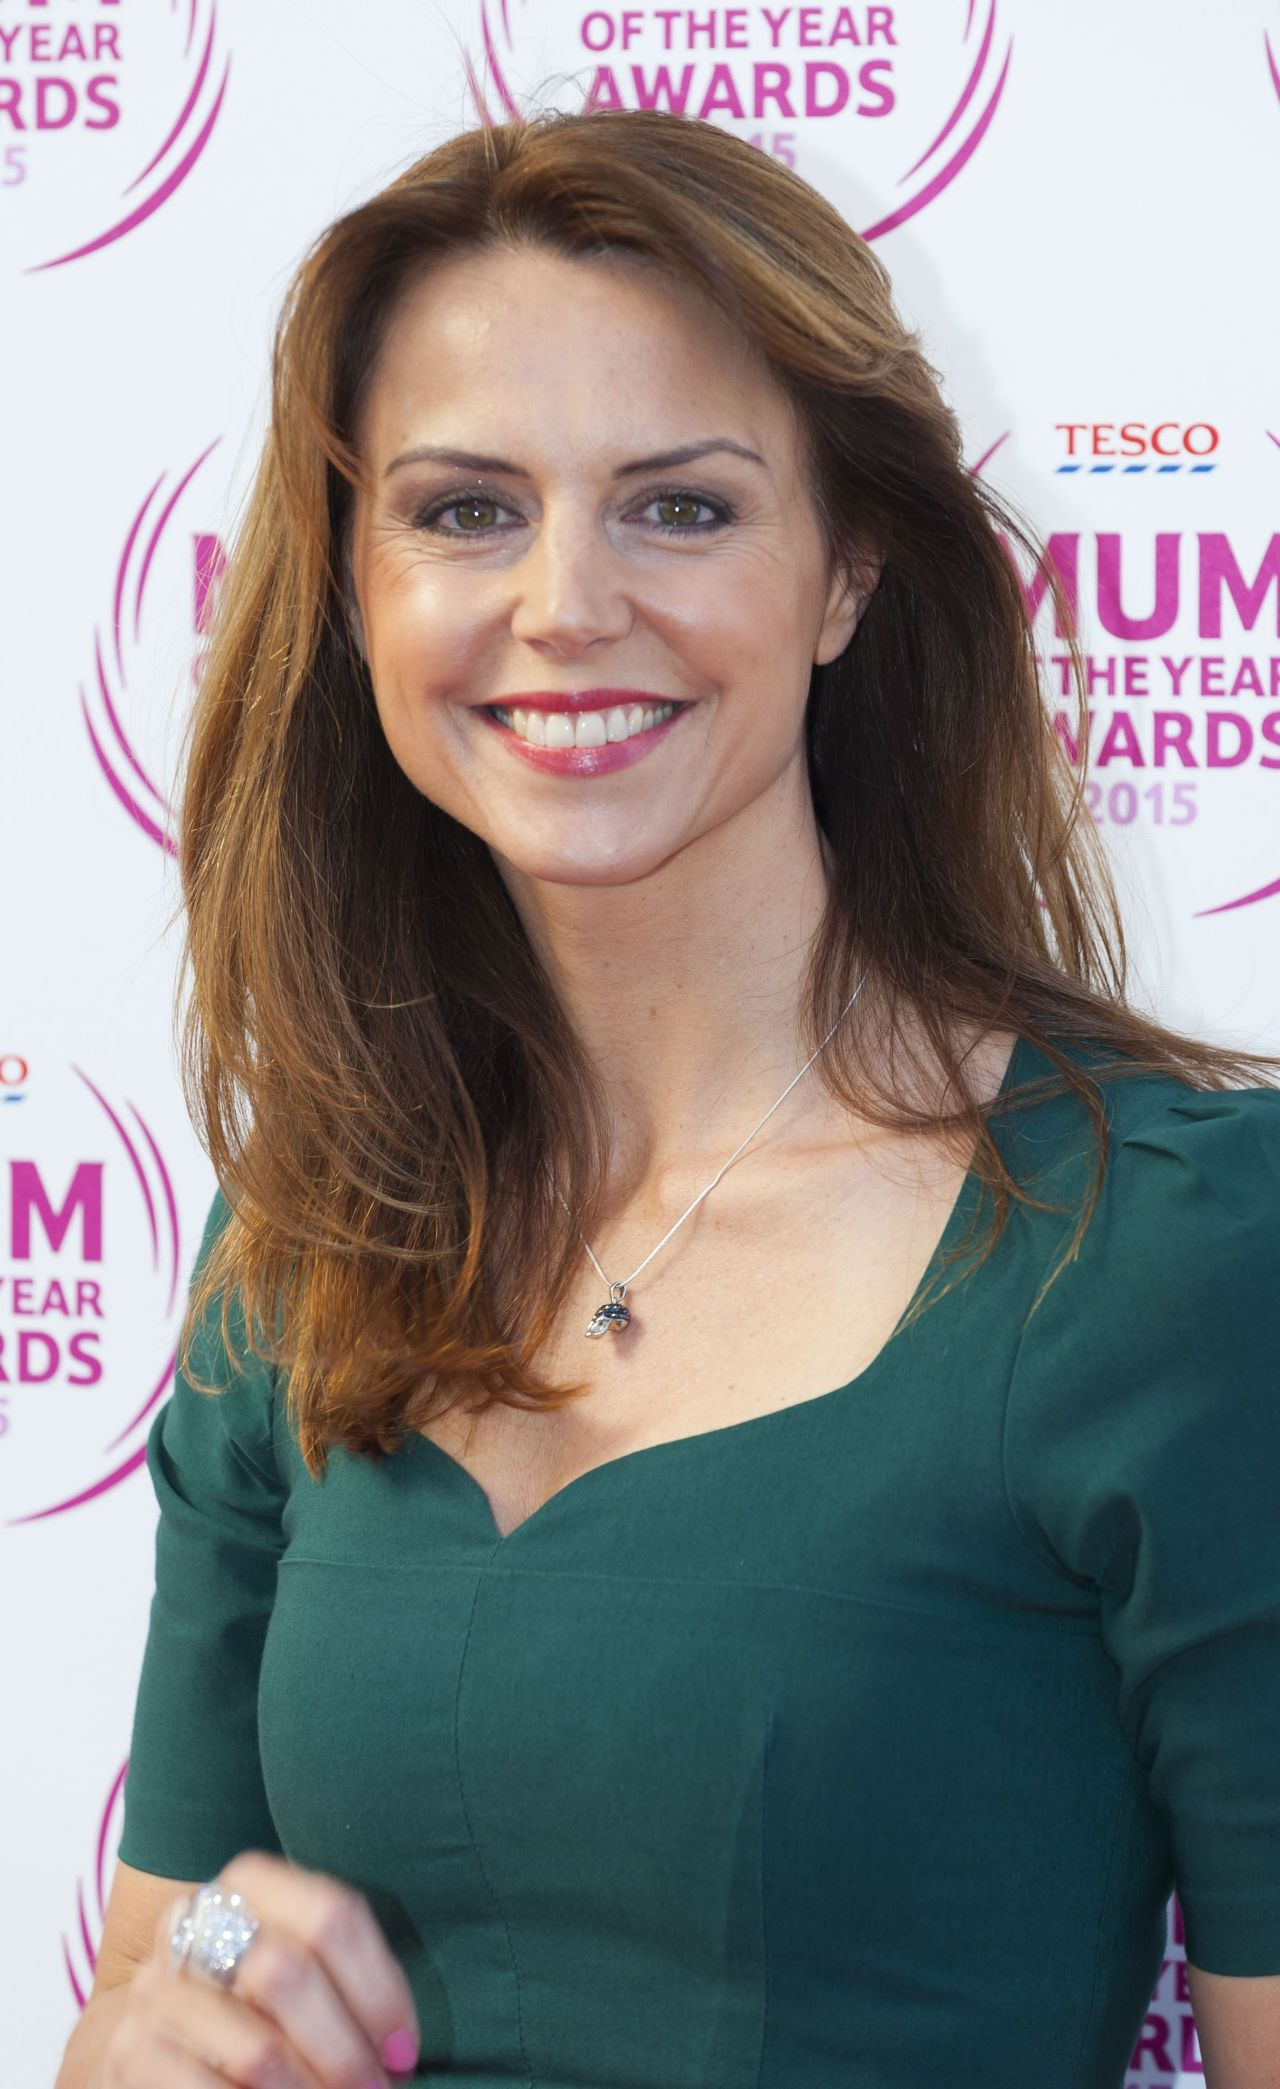 Beverley Turner 2015 Tesco Mum Of The Year Awards In London